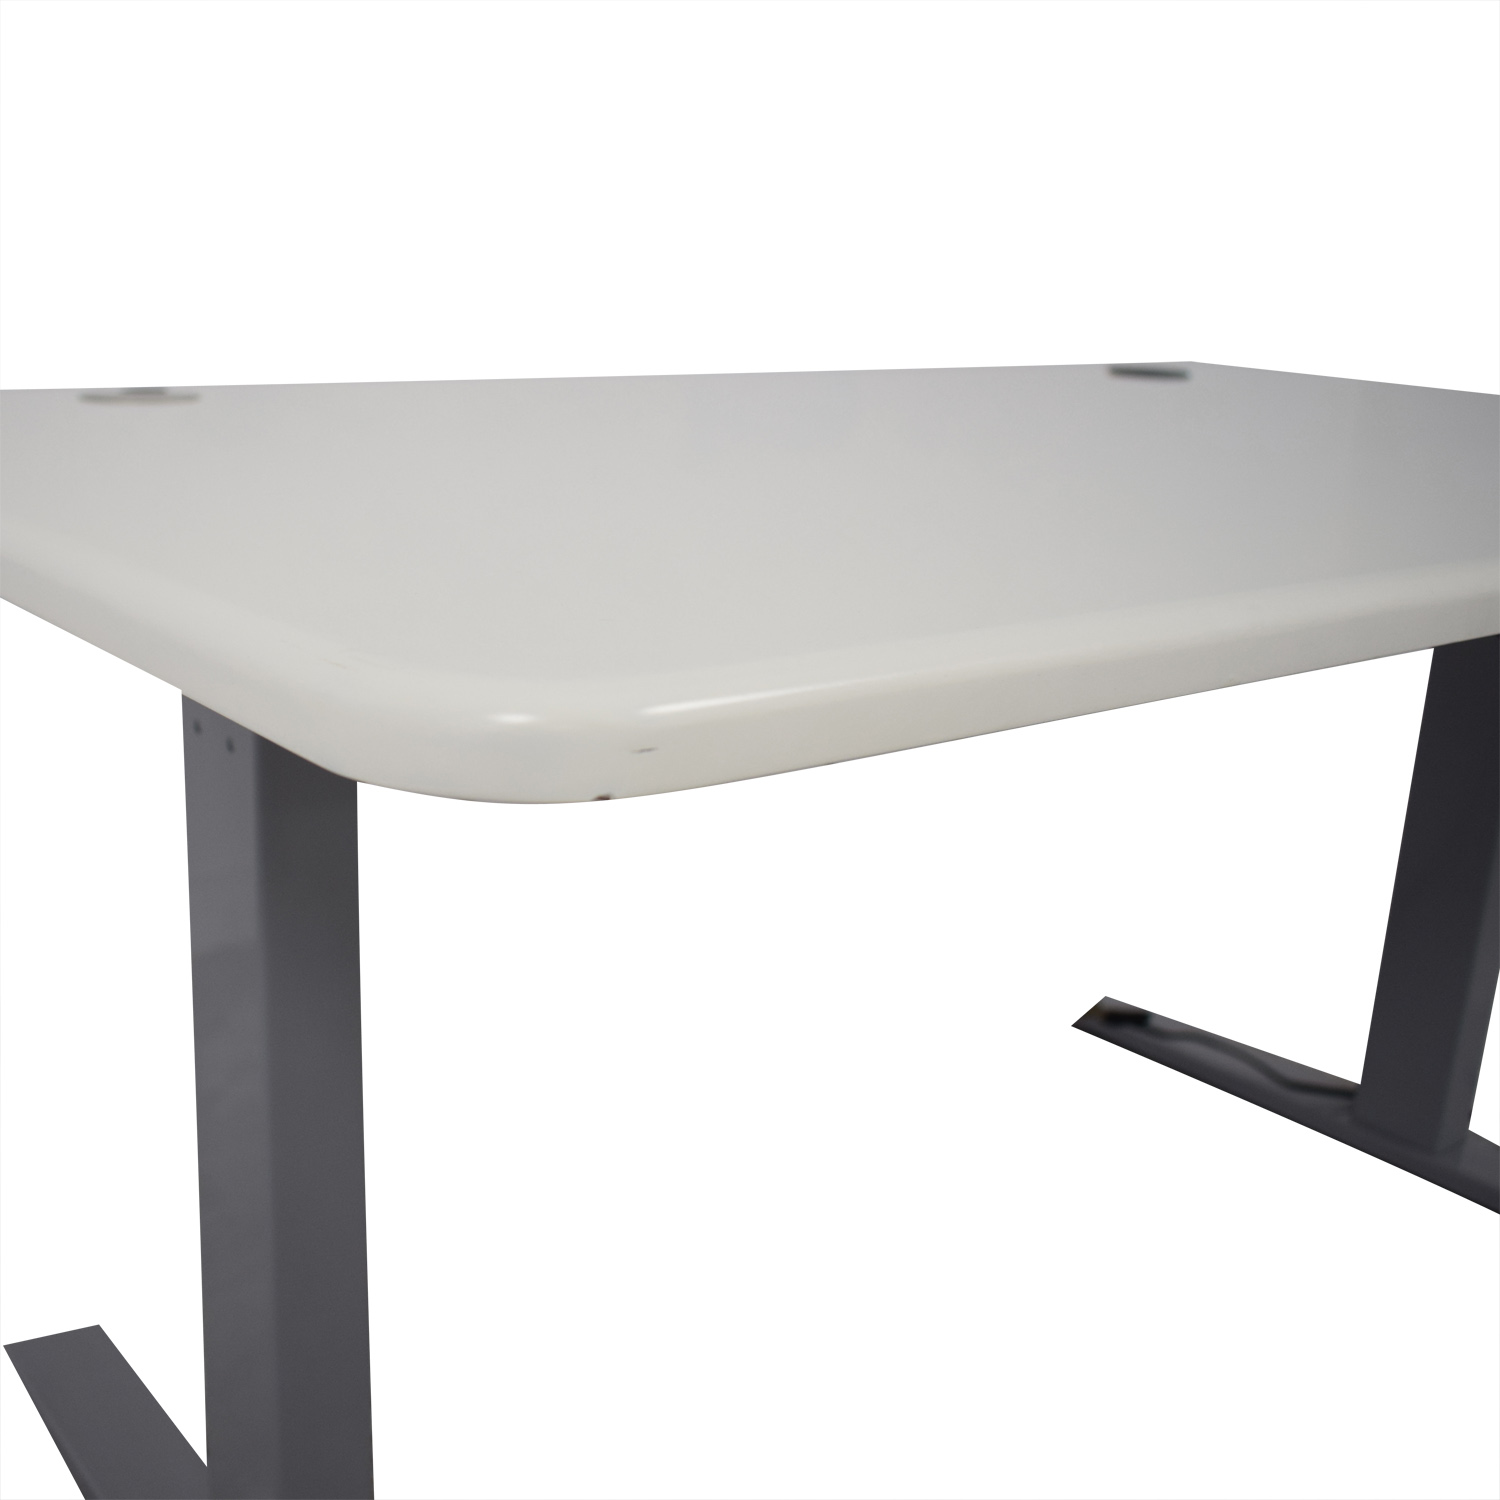 Poppin Series L Adjustable Height Single Desk / Tables